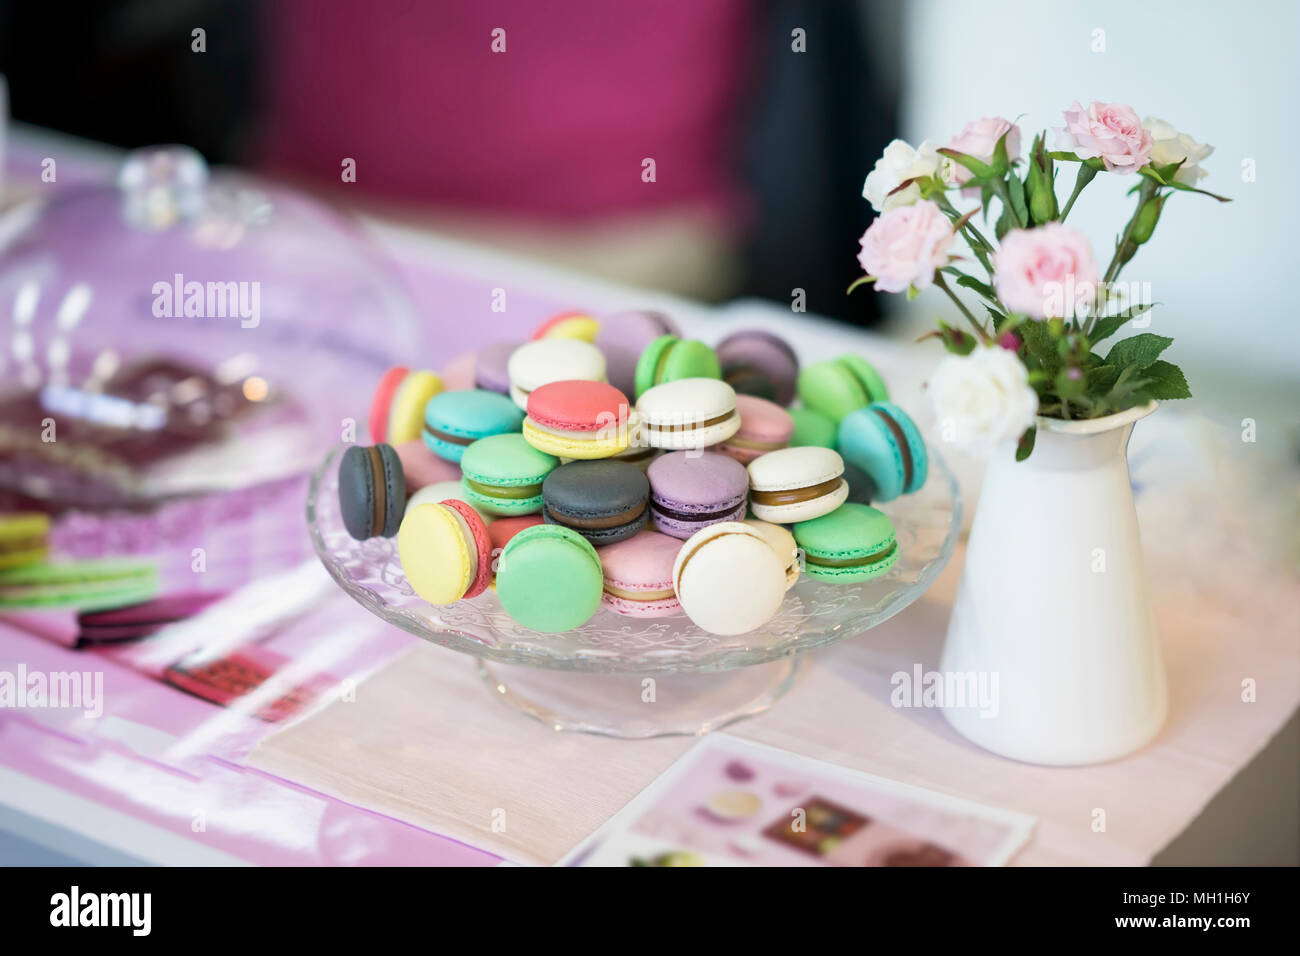 Different colorful macarons spring flowers roses tender pink different colorful macarons spring flowers roses tender pink background romantic morning gift present for beloved light backdrop negle Choice Image